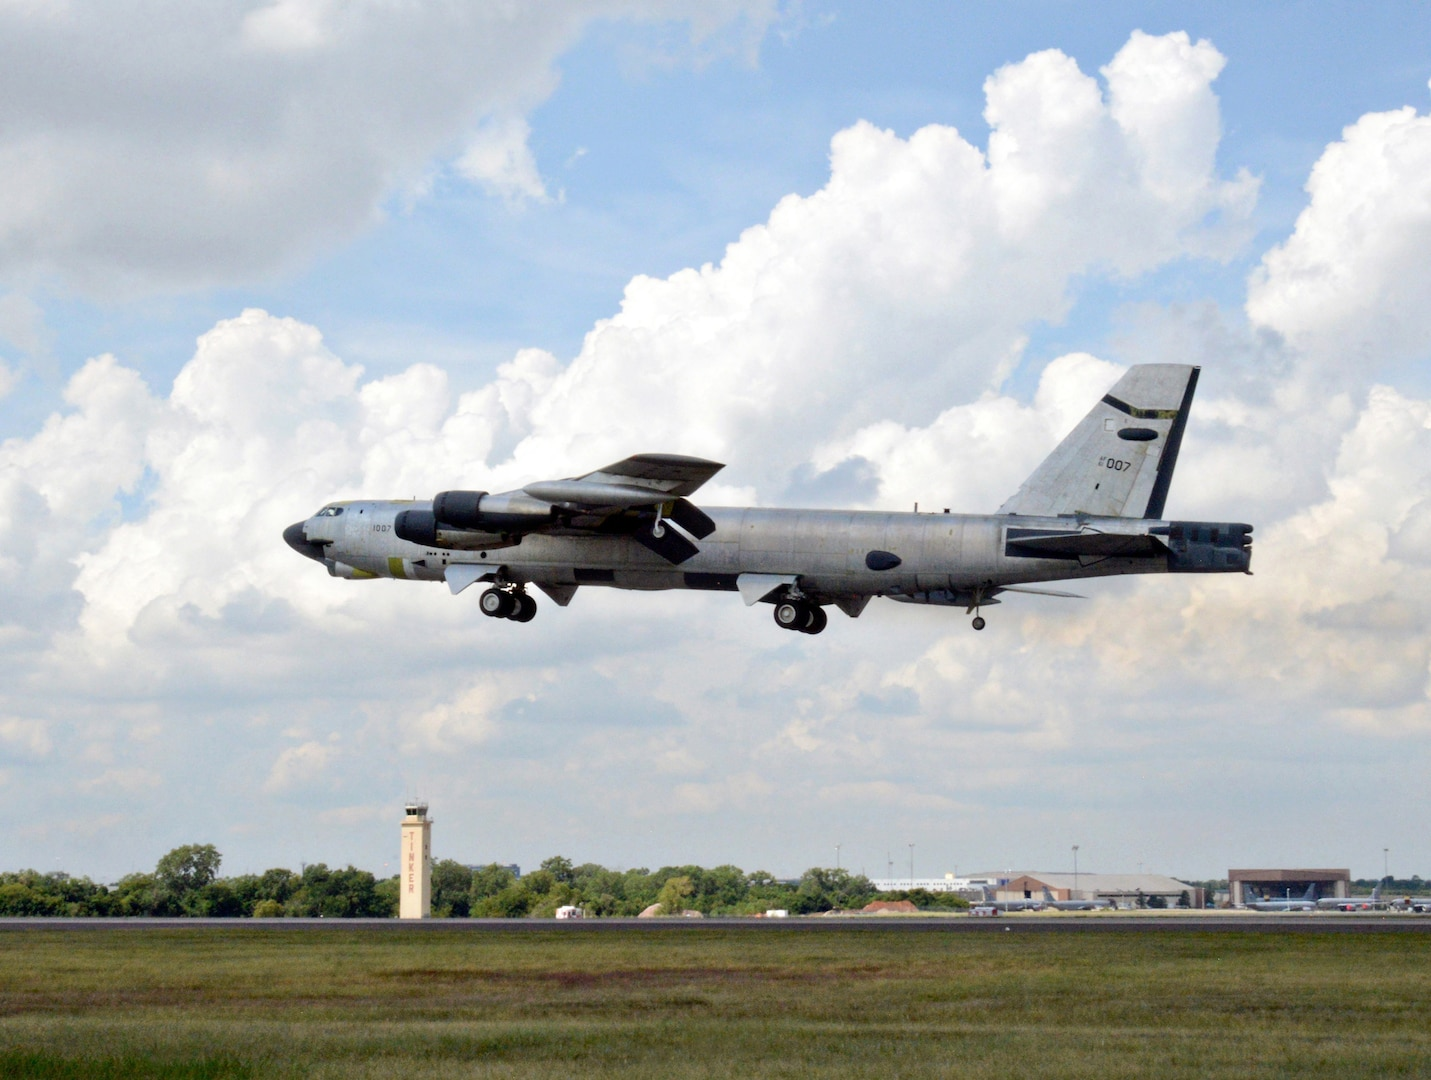 """""""Ghost Rider,"""" takes to the skies for a functional test flight Aug. 30, 2016, at Tinker Air Force Base, Okla. The B-52H Stratofortress is shown in natural metal since it has been overhauled and must be checked for full functionality before being painted. 61-0007 is the first B-52H to ever be regenerated from long-term storage with the 309th Aerospace Maintenance and Regeneration Group at Davis-Monthan AFB, Ariz., and returned to fully-operational flying status. (U.S. Air Force photo by Kelly White)"""